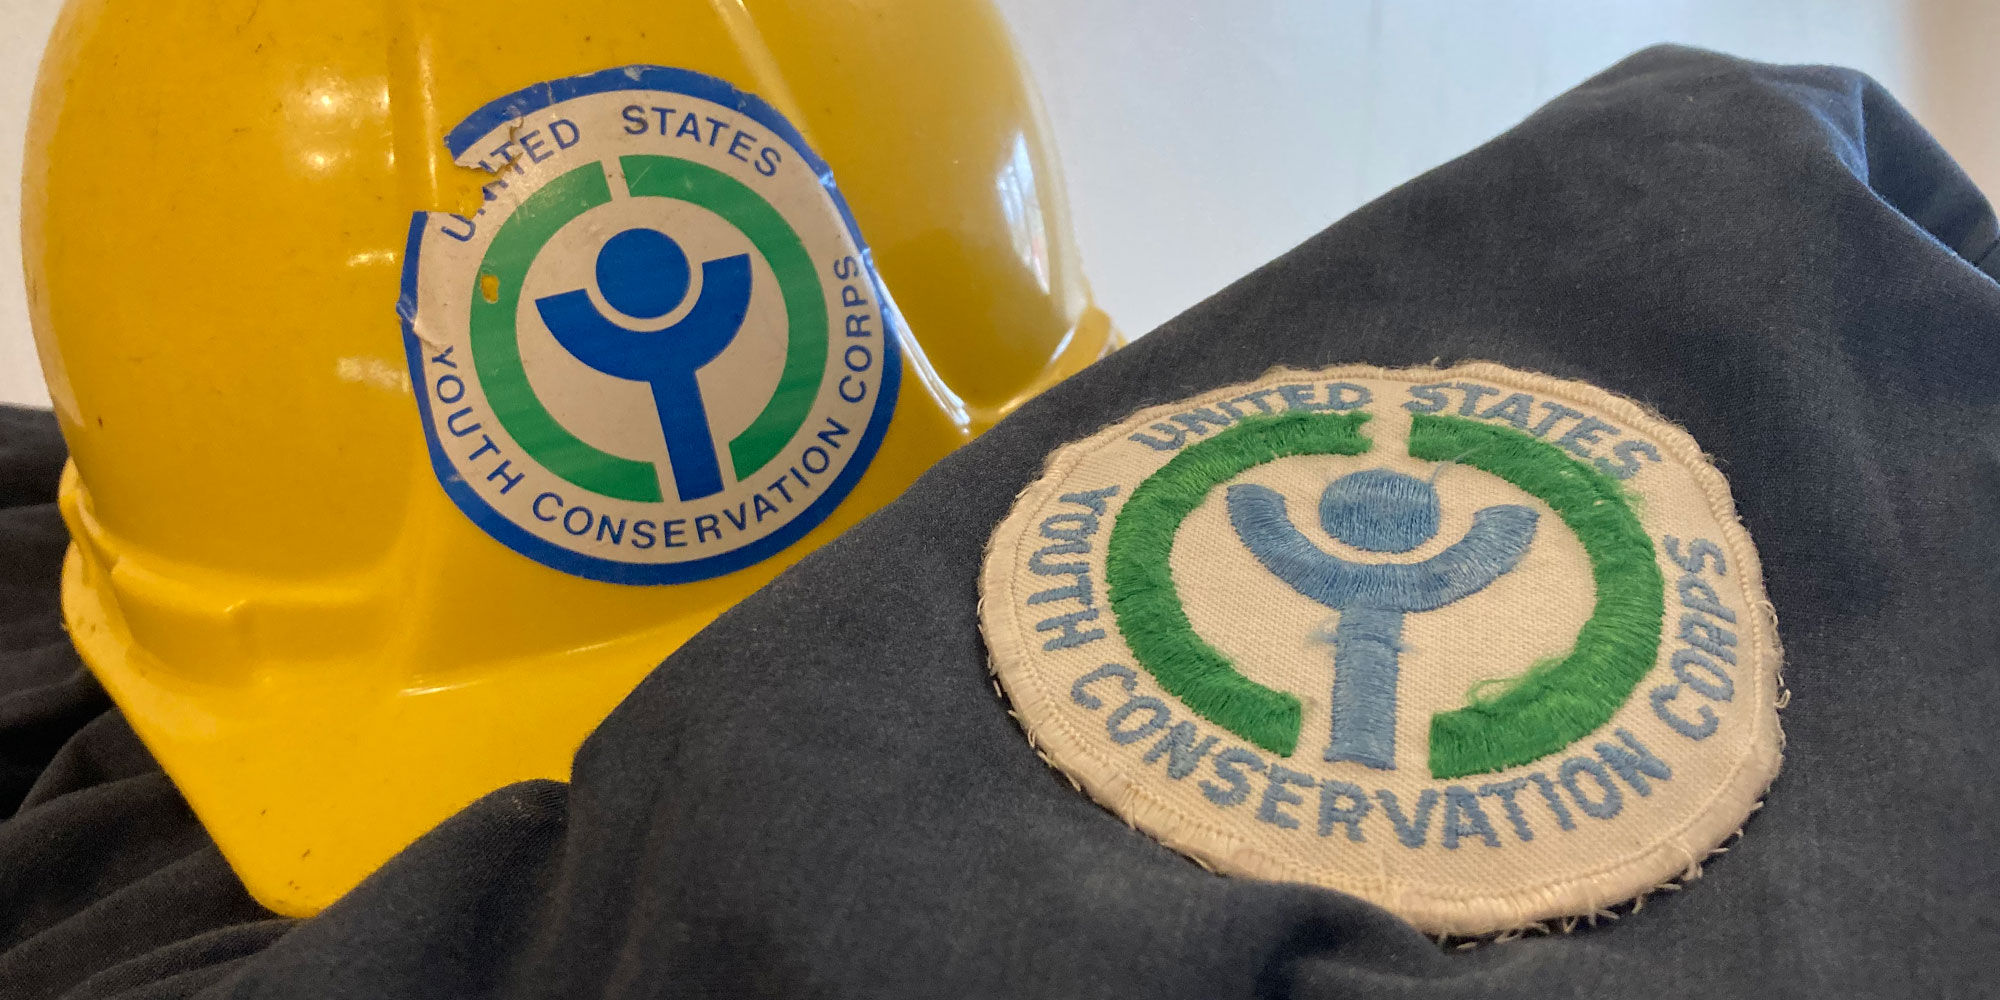 Revisiting Conservation Corps for Earth Day 2021